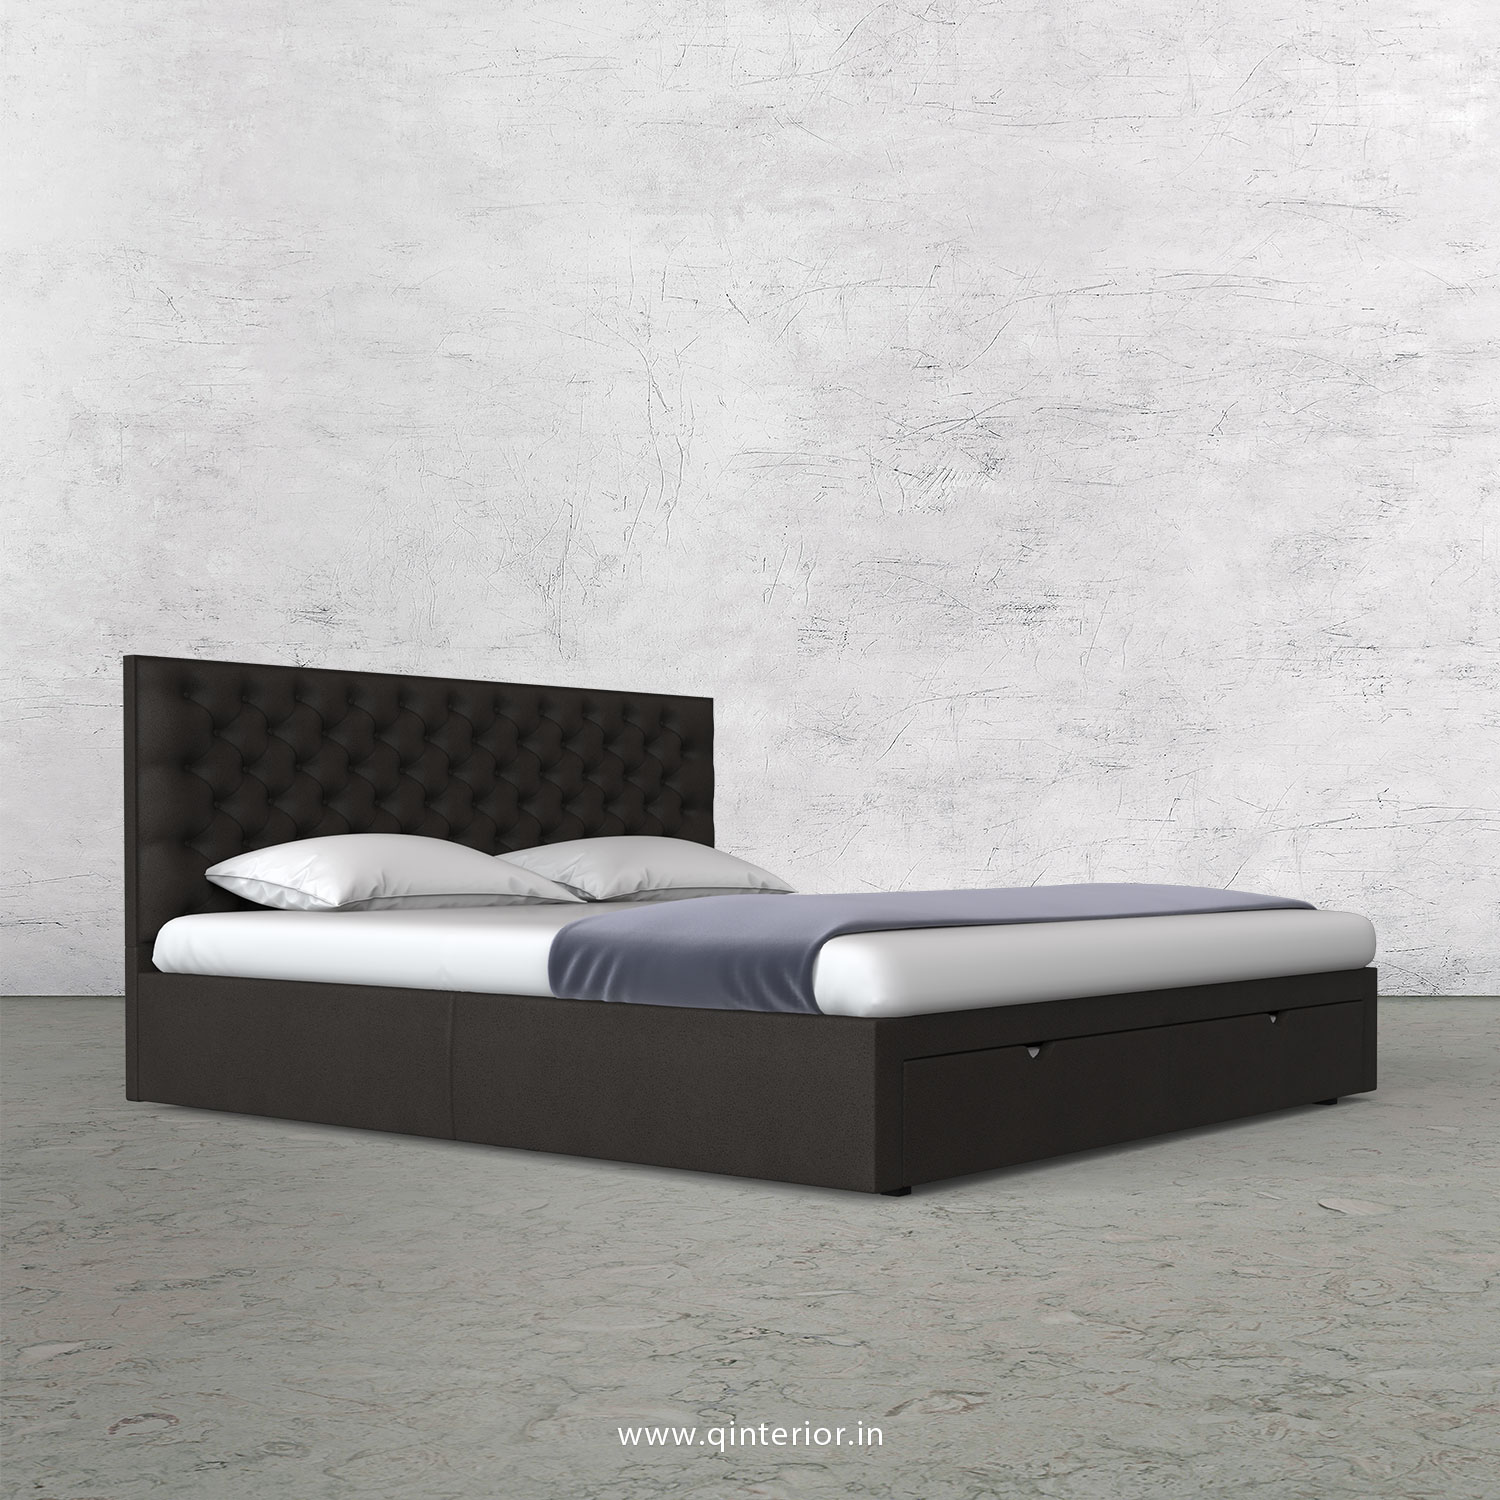 Orion Queen Storage Bed in Fab Leather Fabric - QBD001 FL15